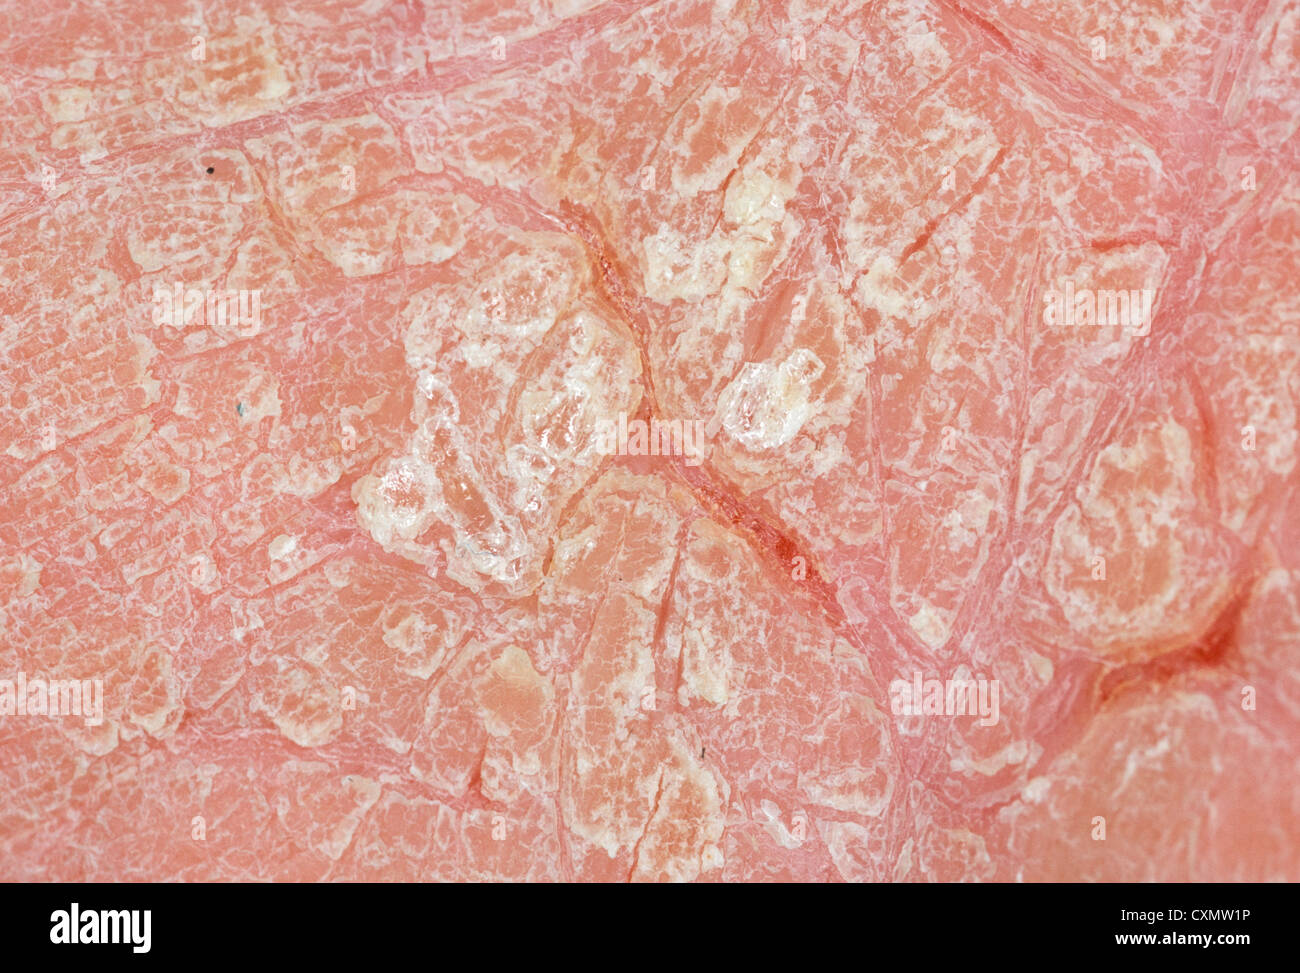 Dermatitis of palm caused by occupational exposure showing ...